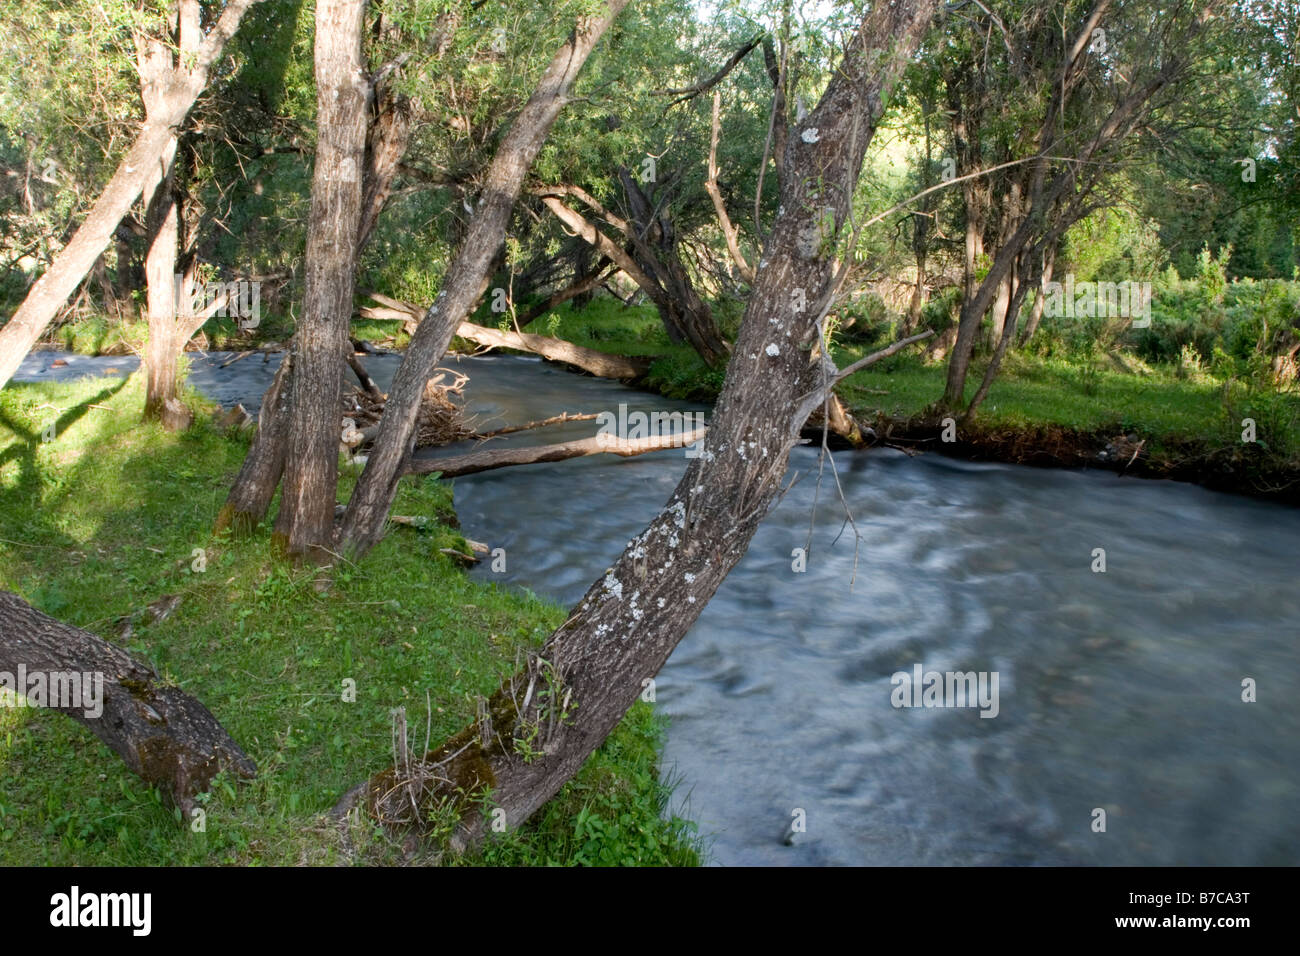 A grove of trees and a stream in Kanas in Xinjiang in China. - Stock Image